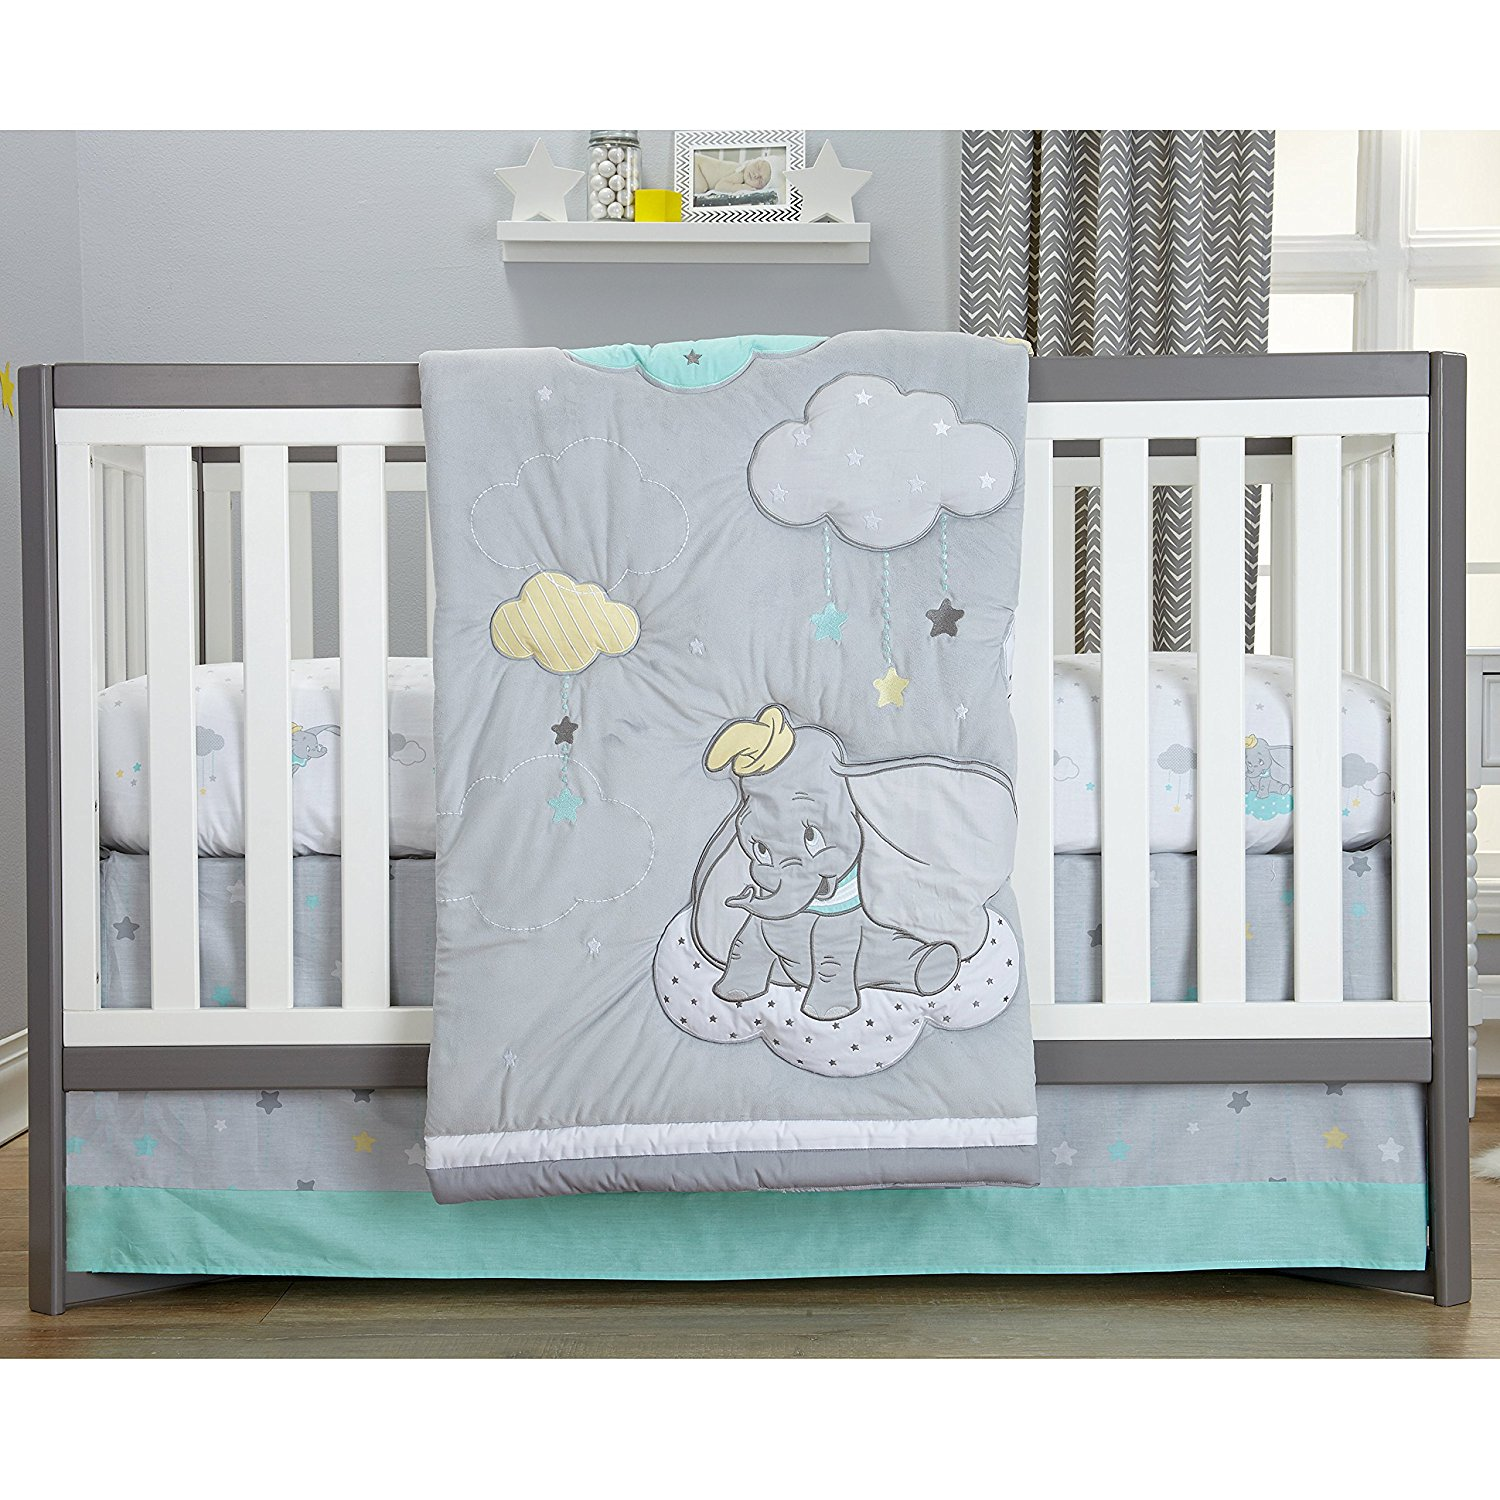 The Right On Mom Vegan Mom Blog Disney Dumbo Baby Room Ideas